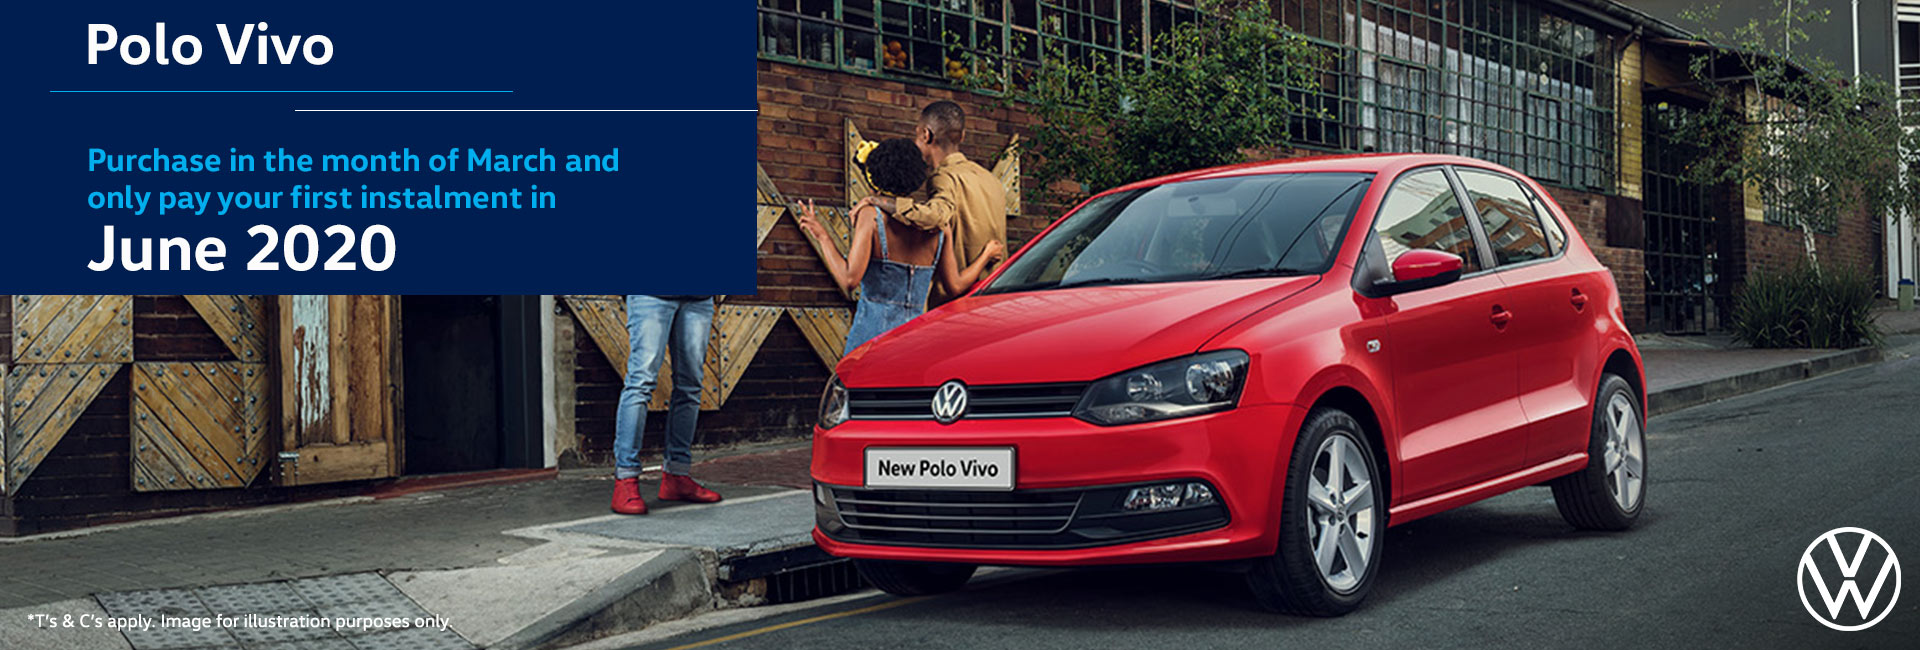 Polo Vivo Offer